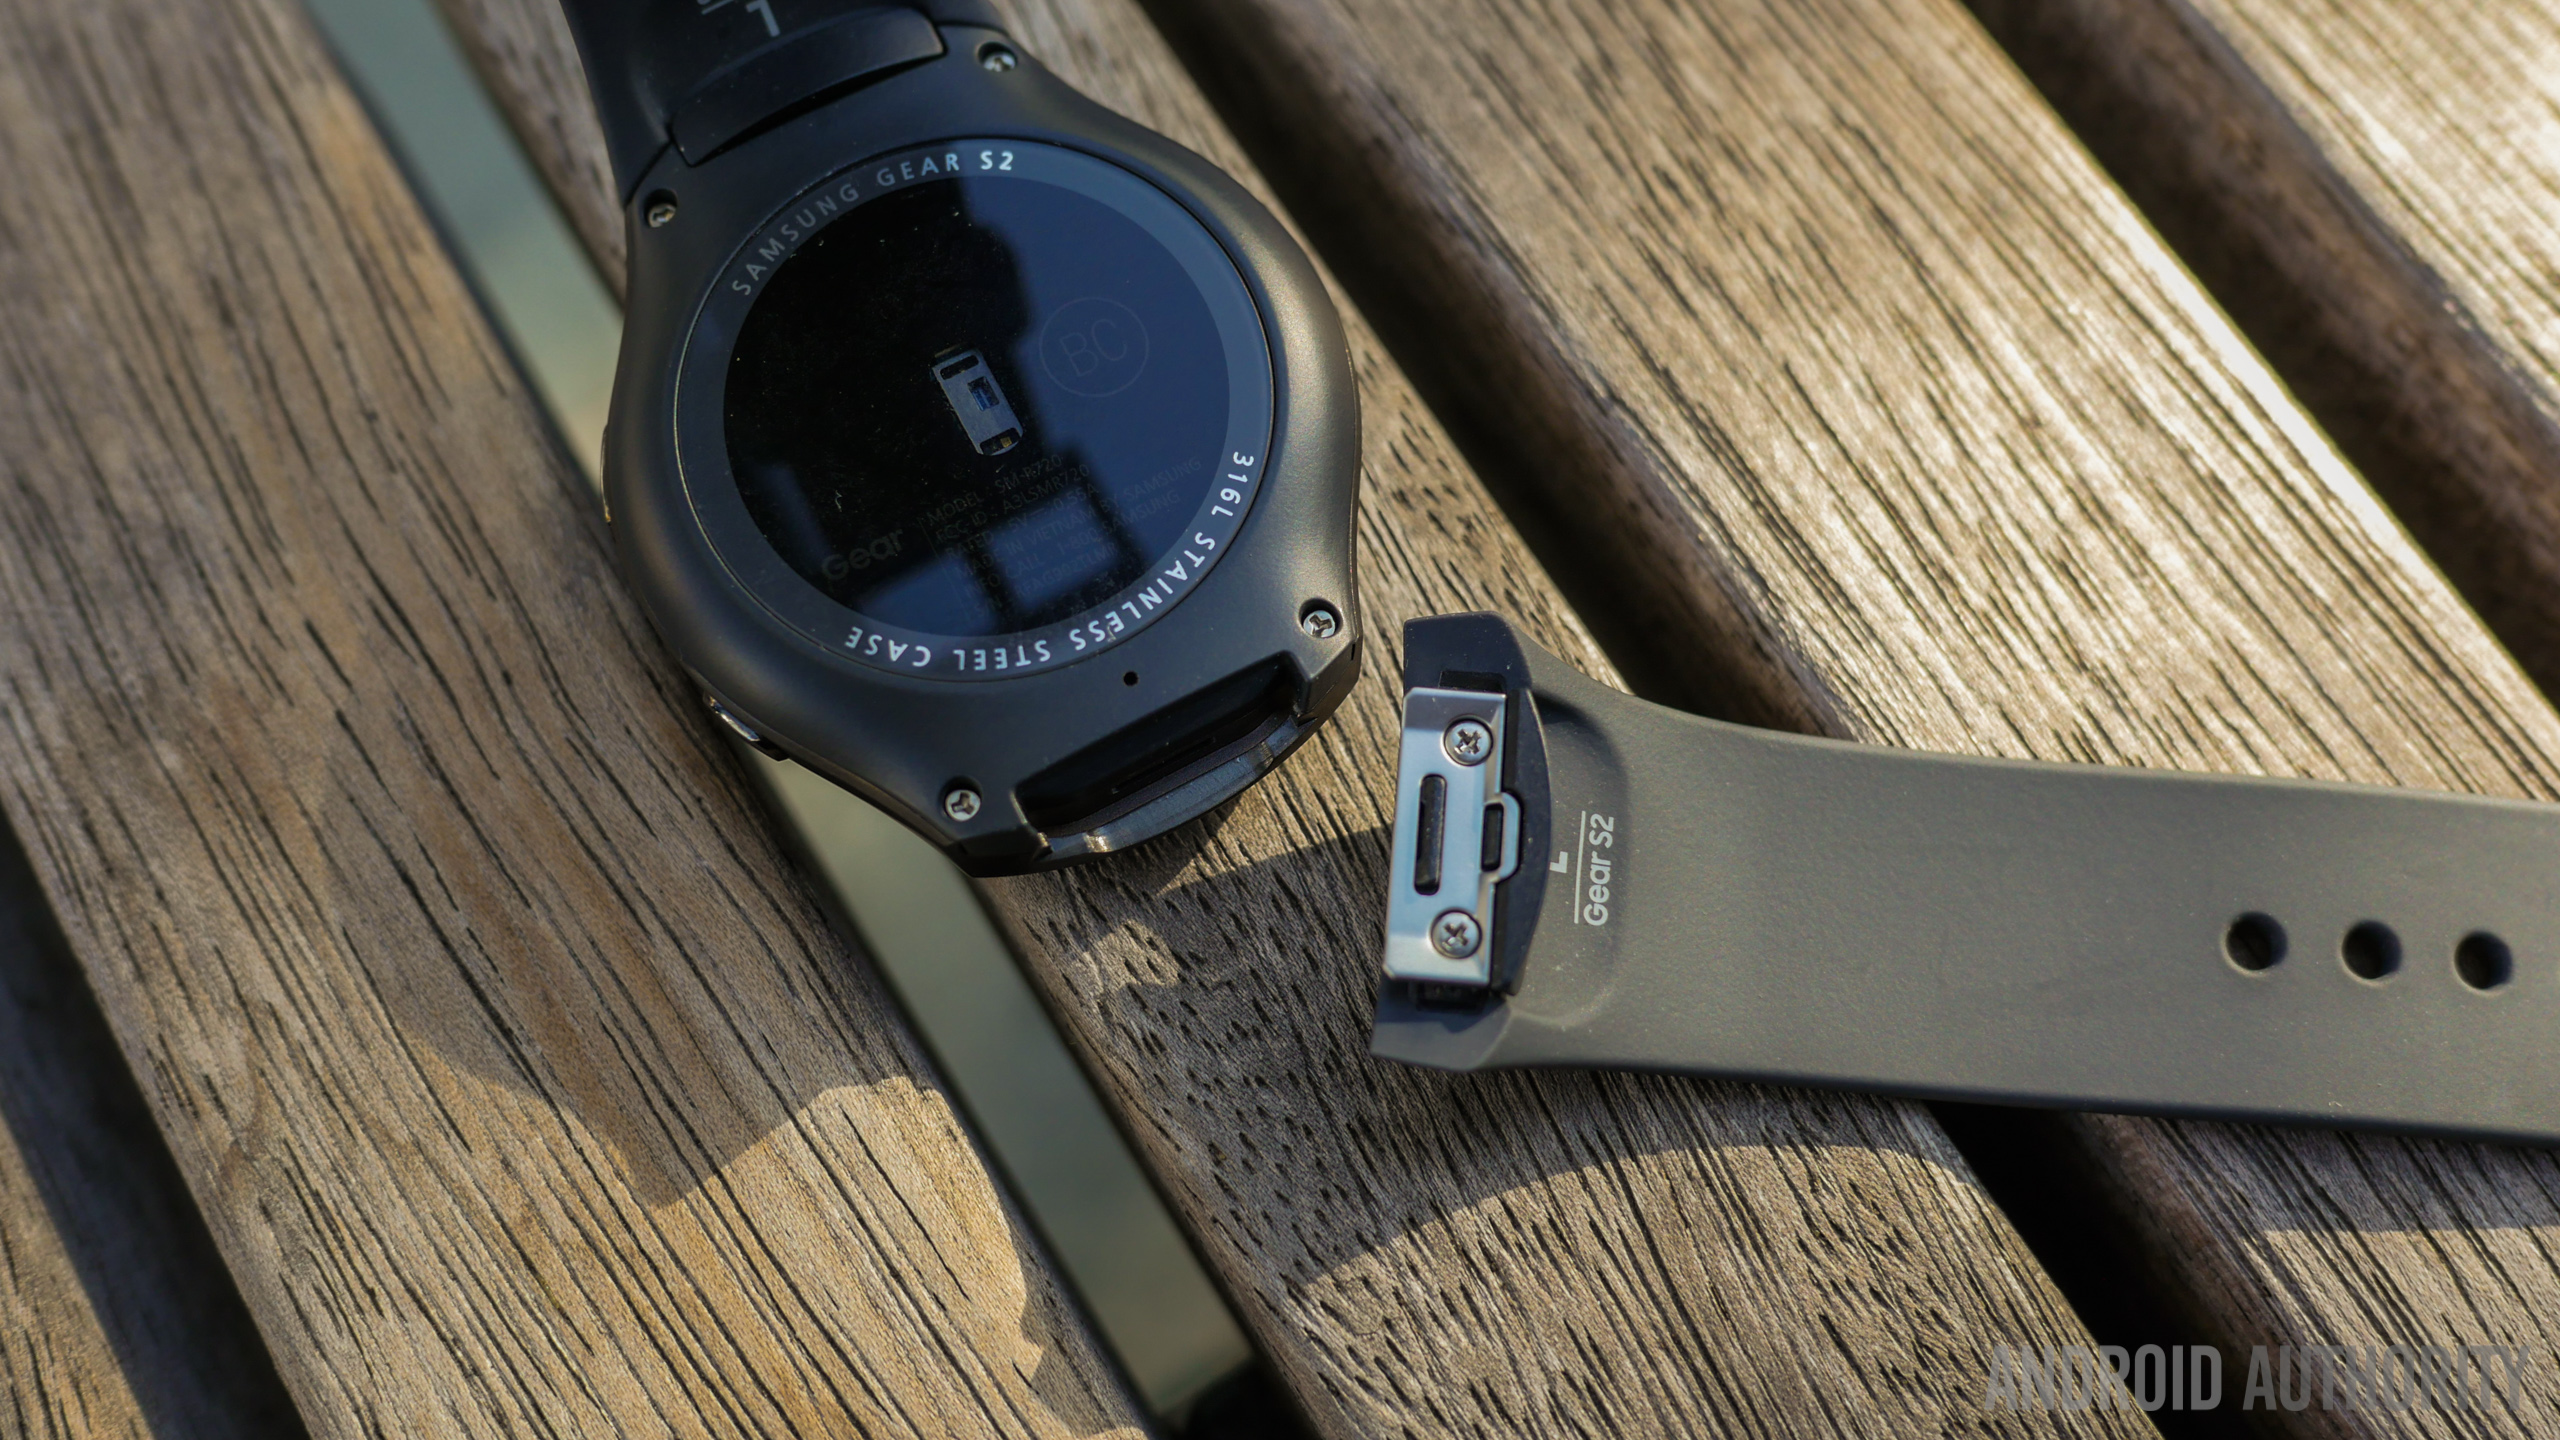 samsung gear s2 review aa (16 of 24)